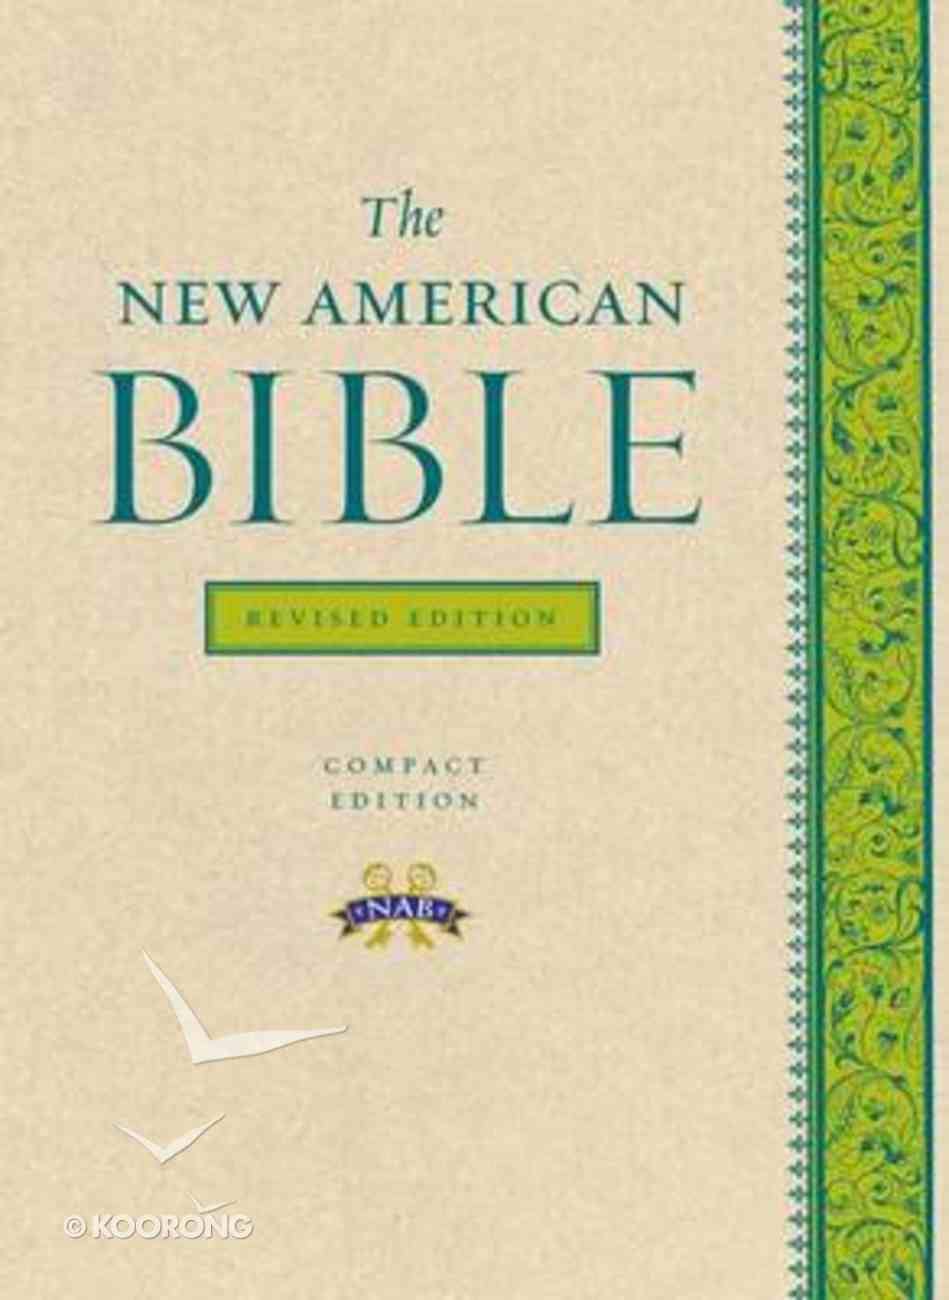 Nab New American Bible Revised Edition Paperback